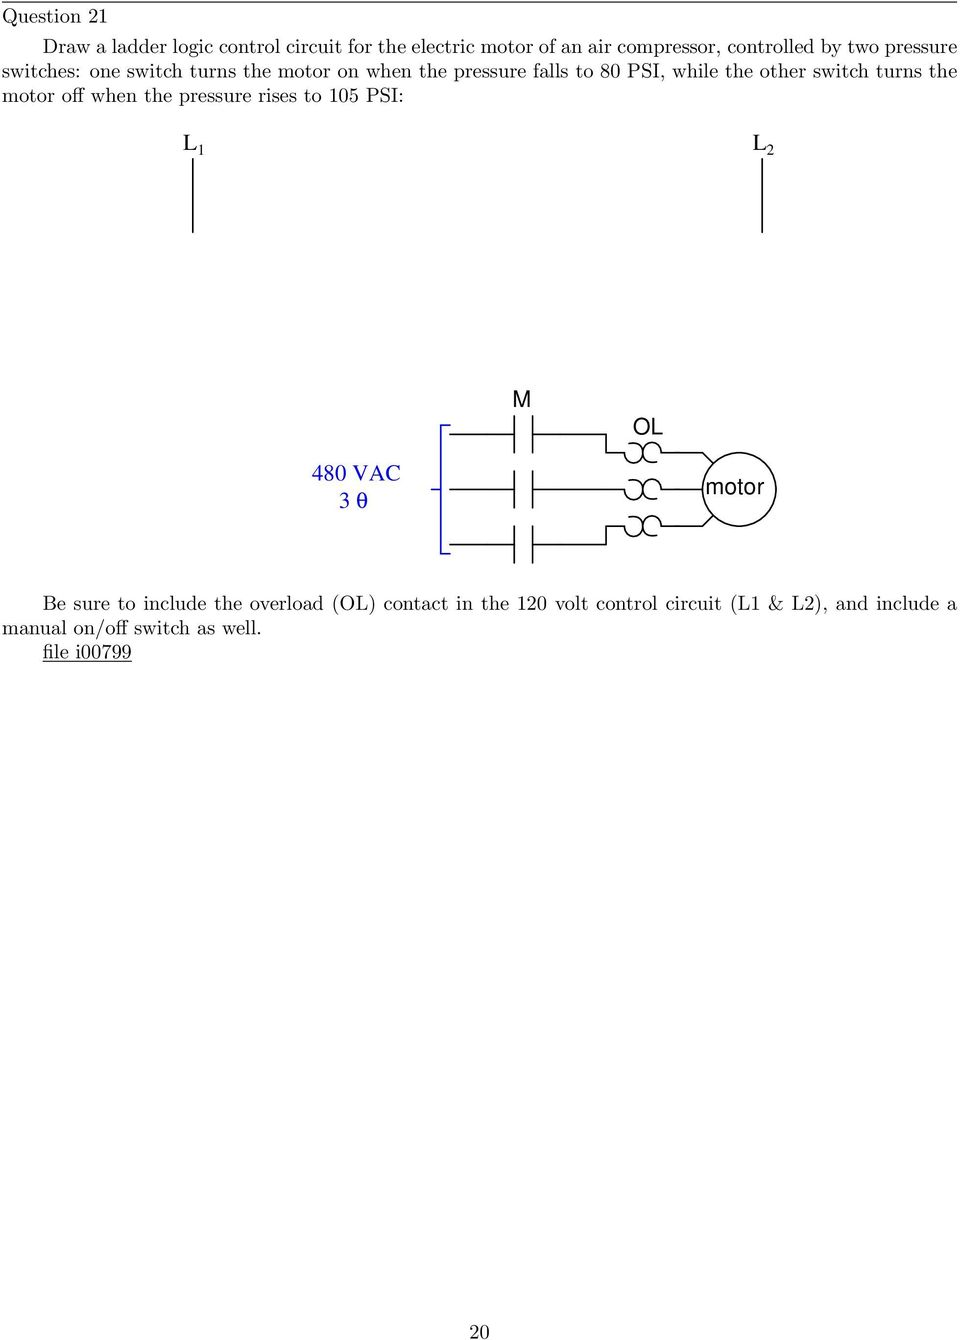 Process Switches And Relay Circuits Pdf Door Knob Touch Alarm Circuit Controlcircuit Diagram Turns The Motor Off When Pressure Rises To 105 Psi M Ol 480 Vac